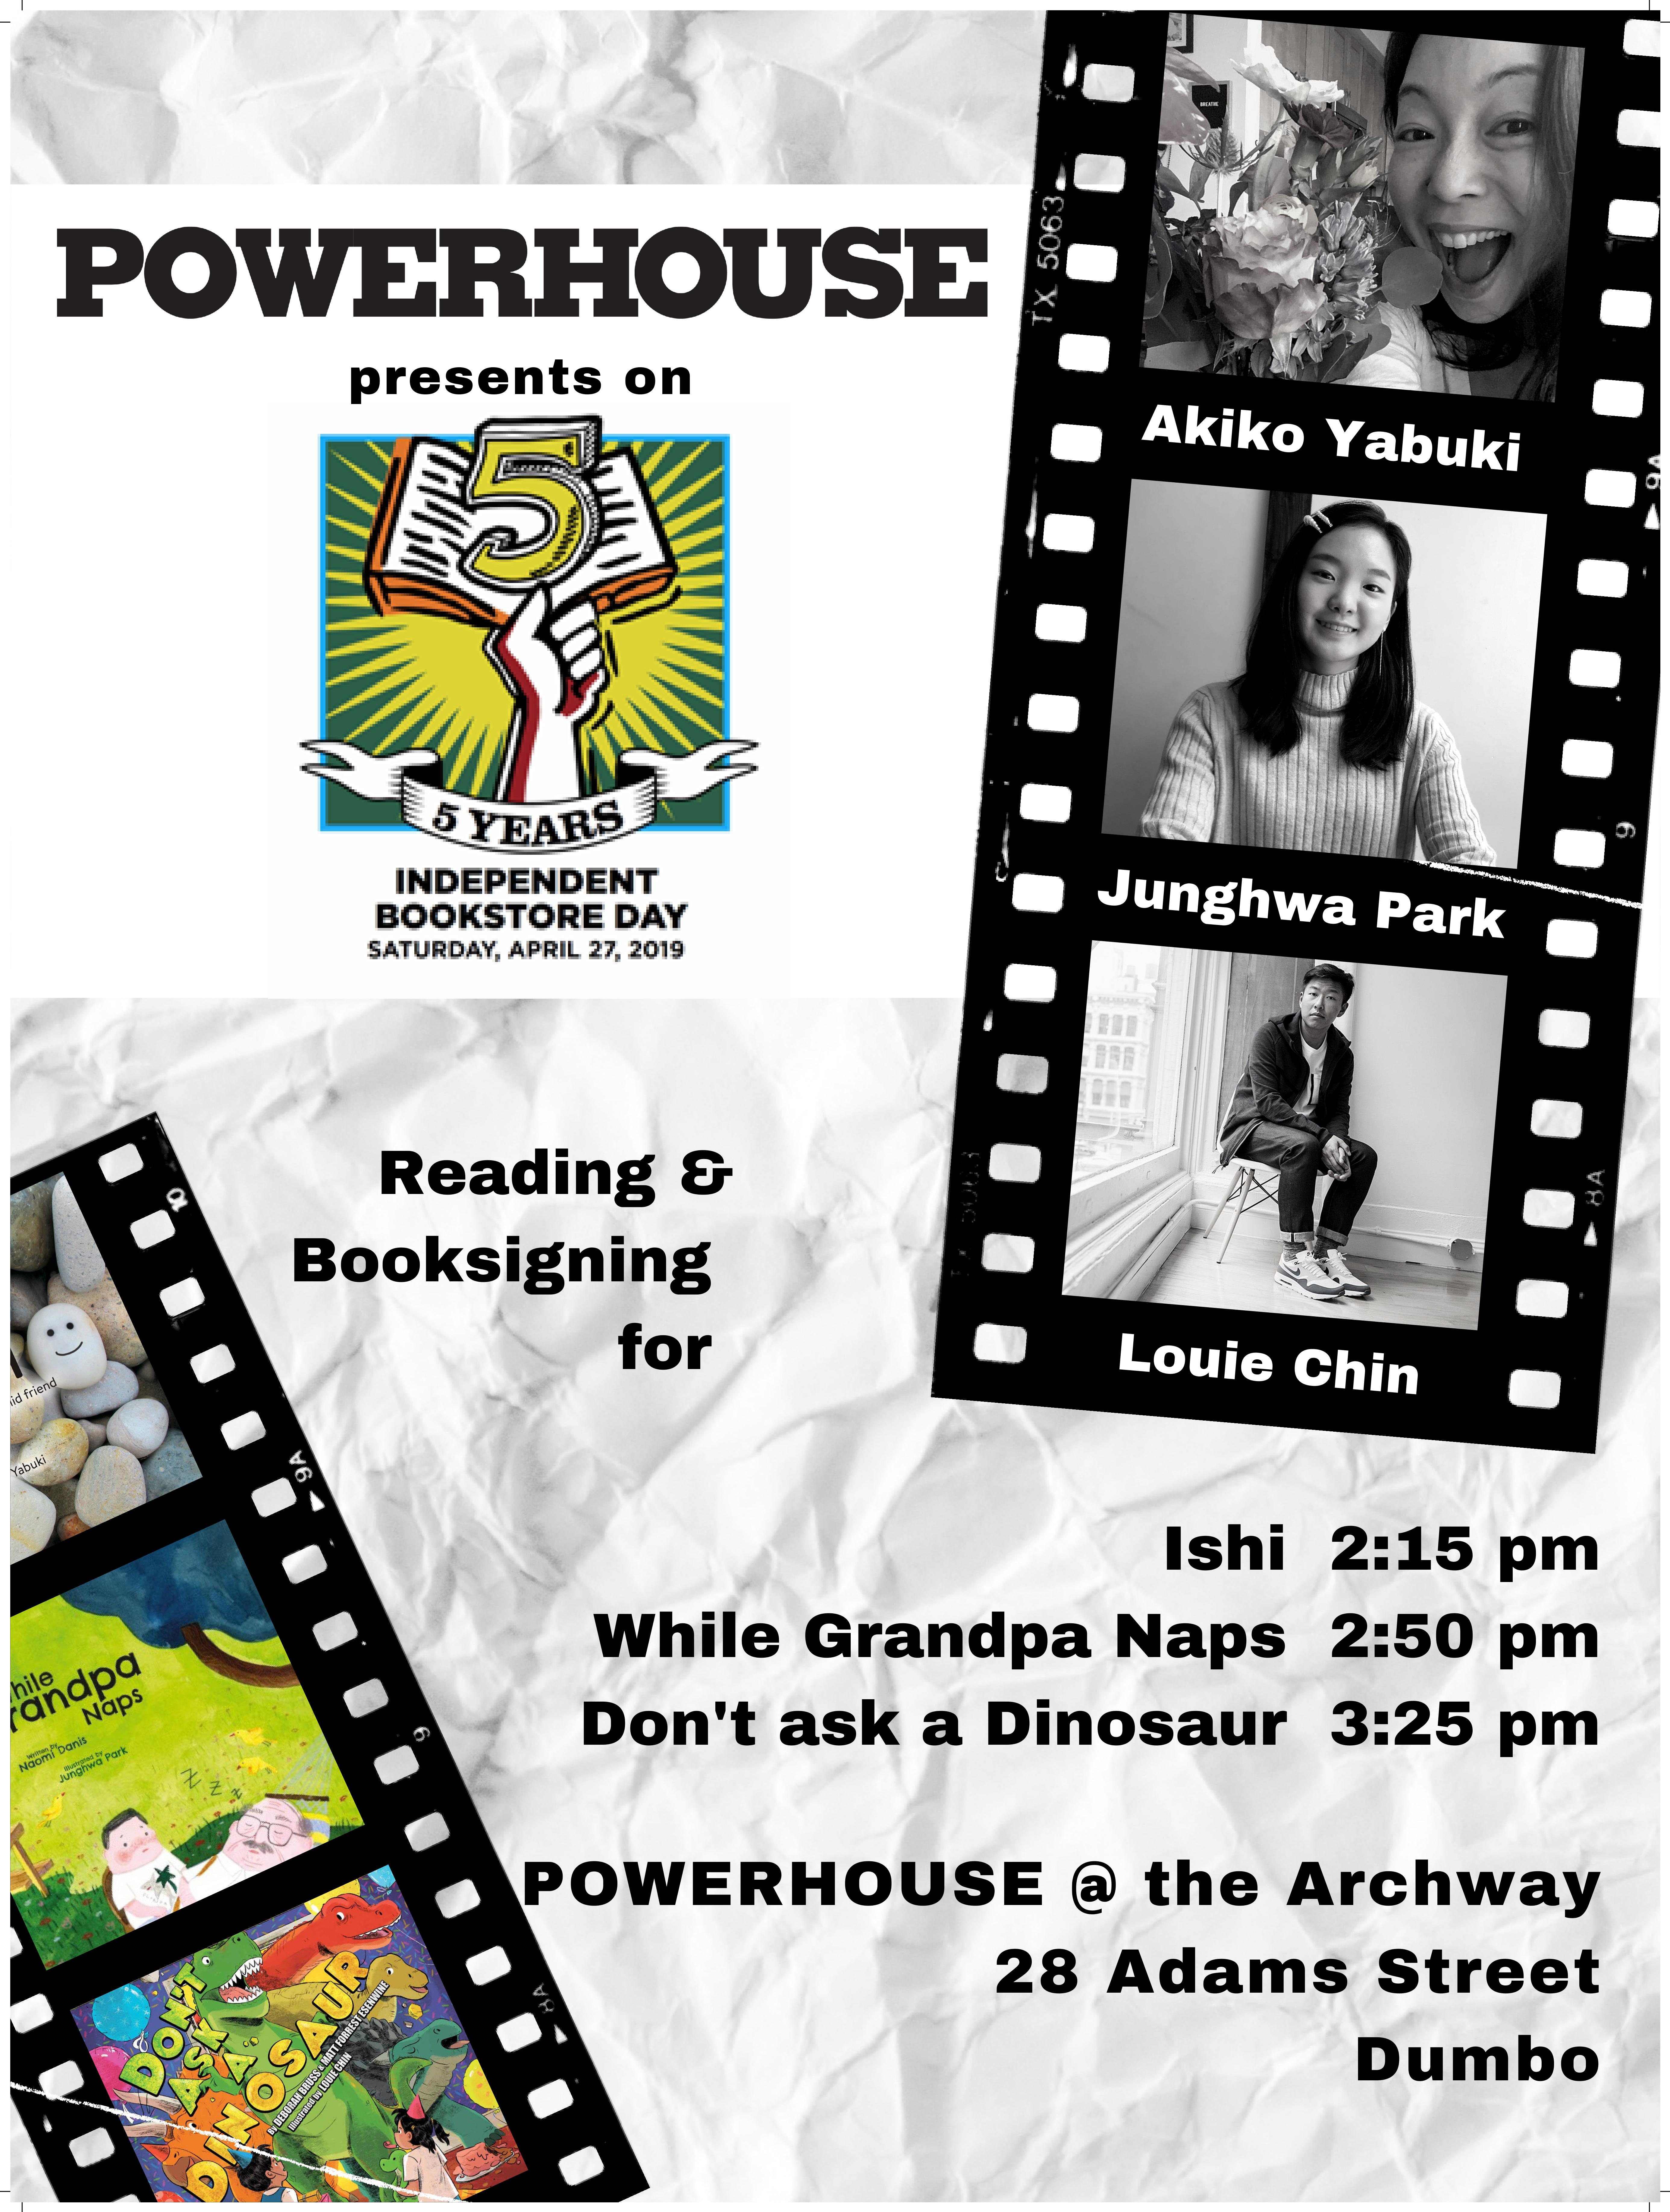 Independent Bookstore Day Events!